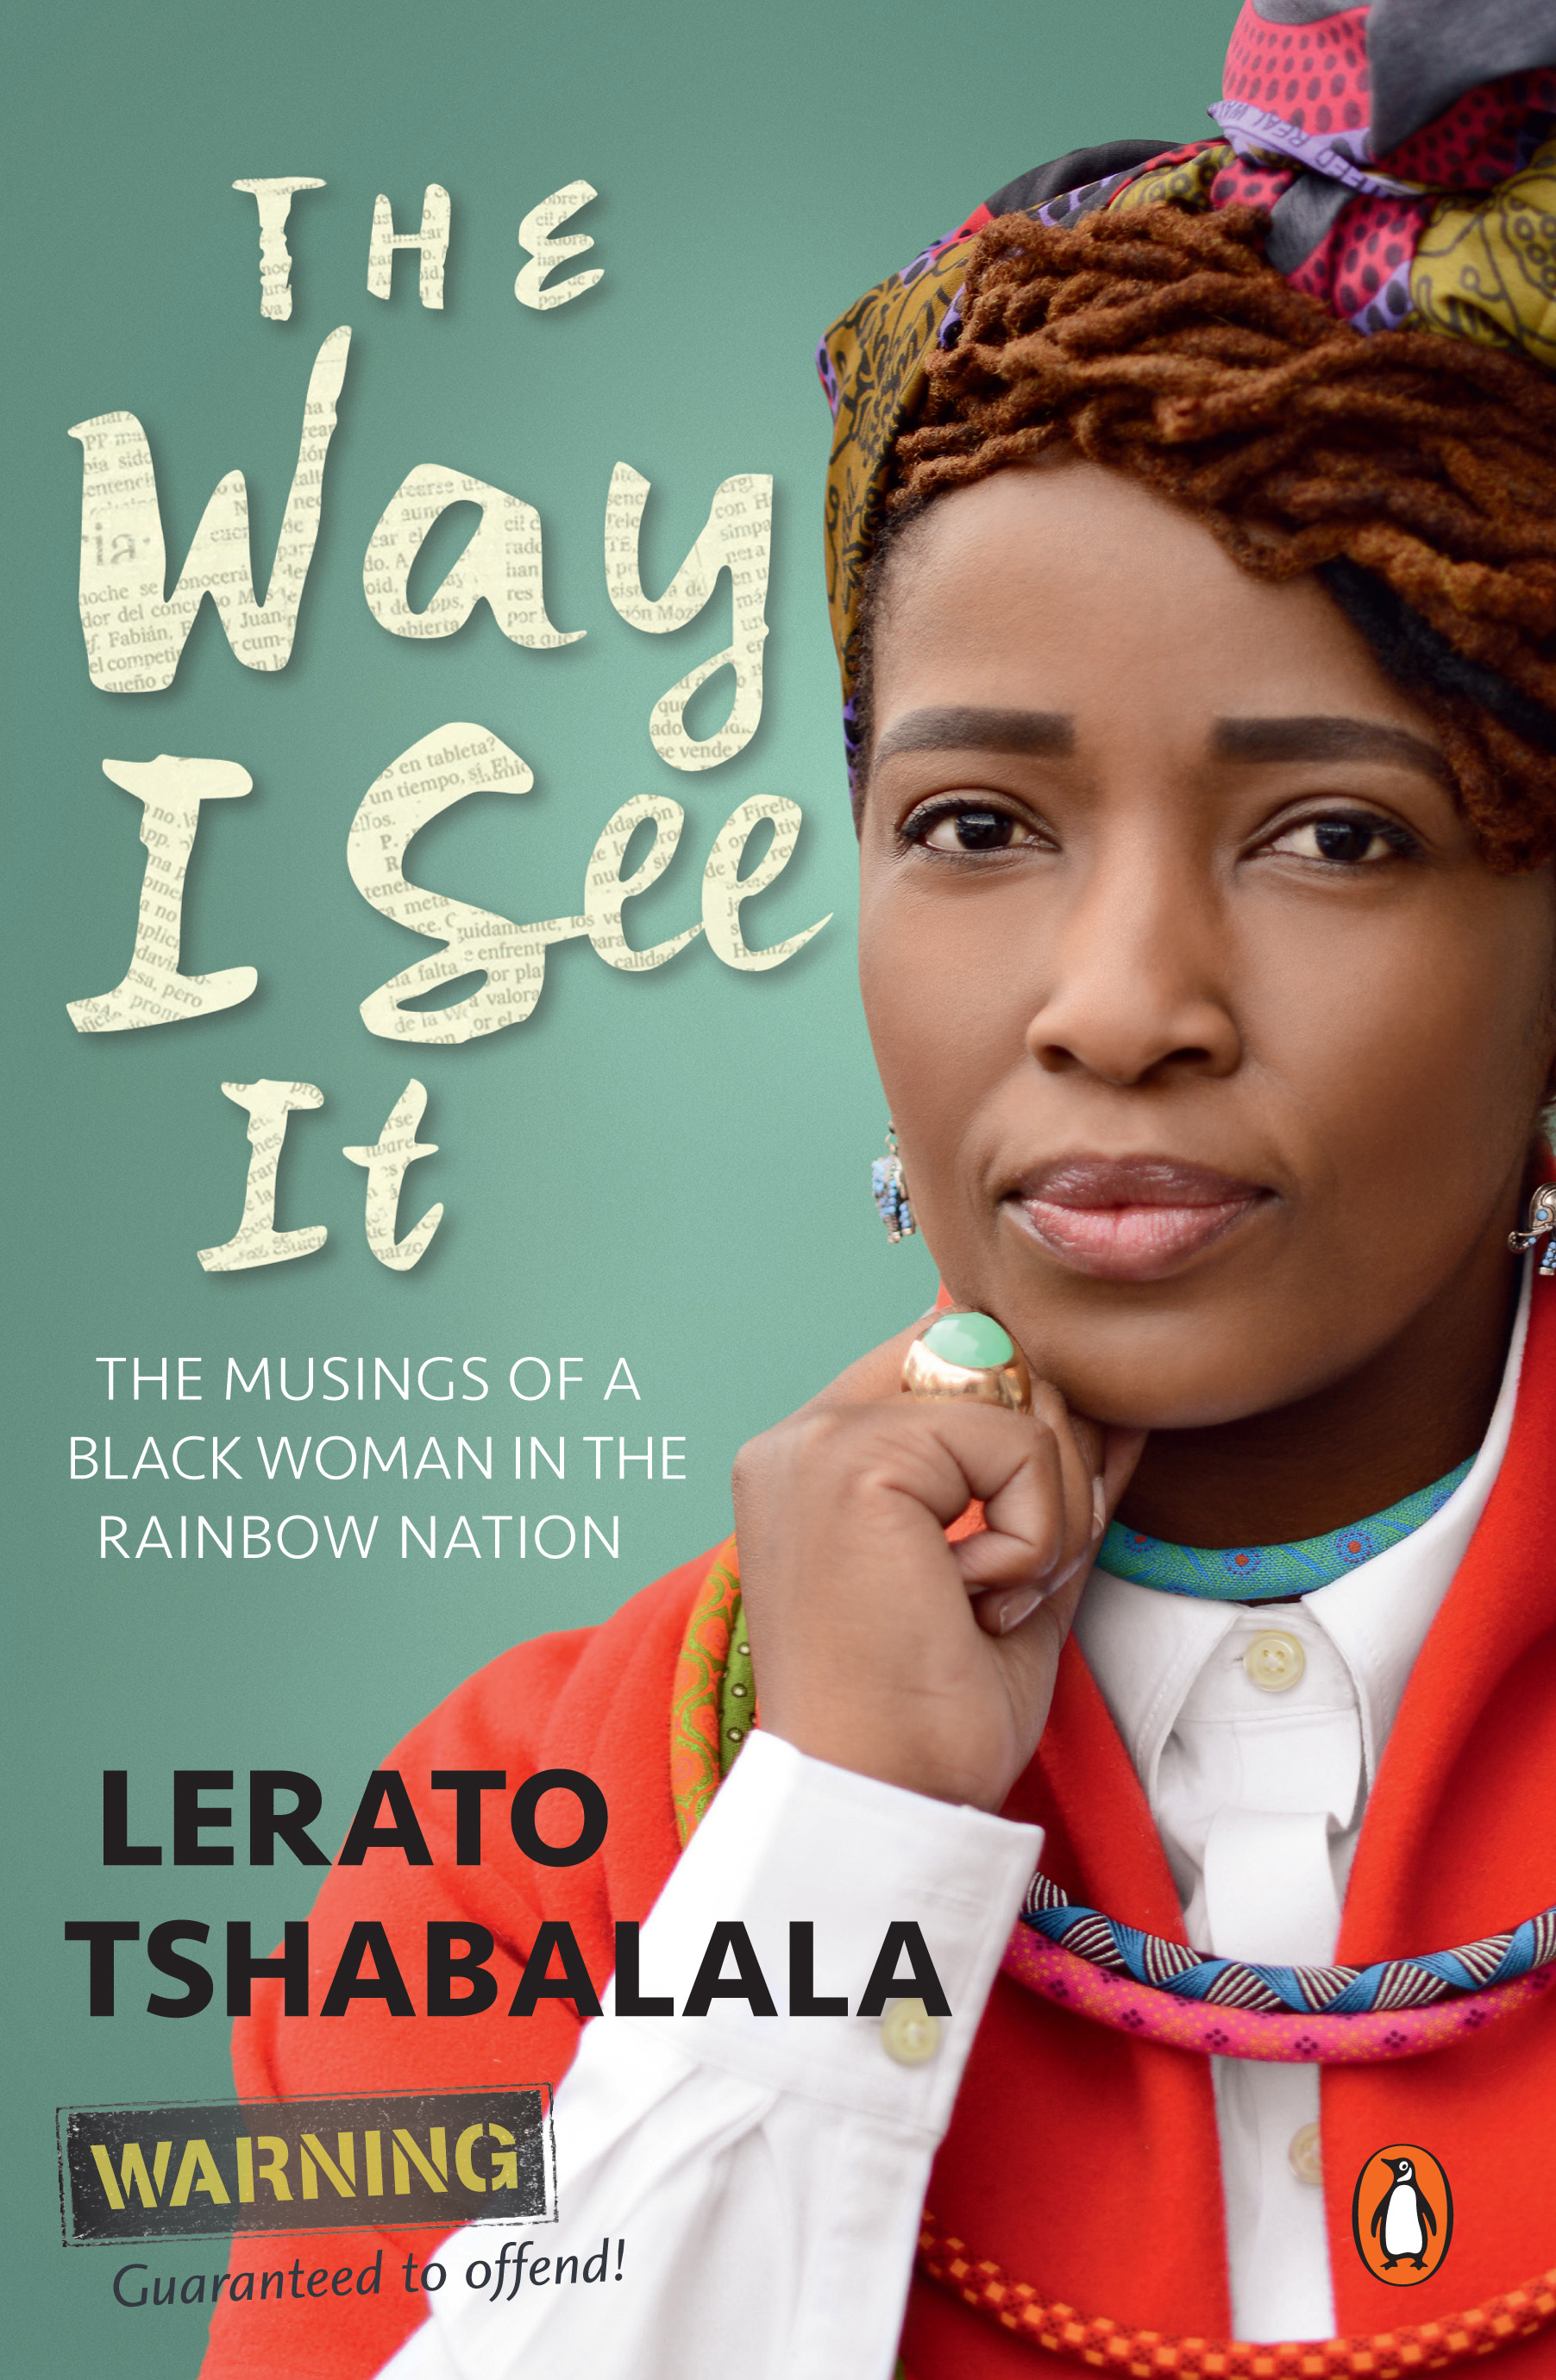 The Way I see it by Lerato Tshabalala